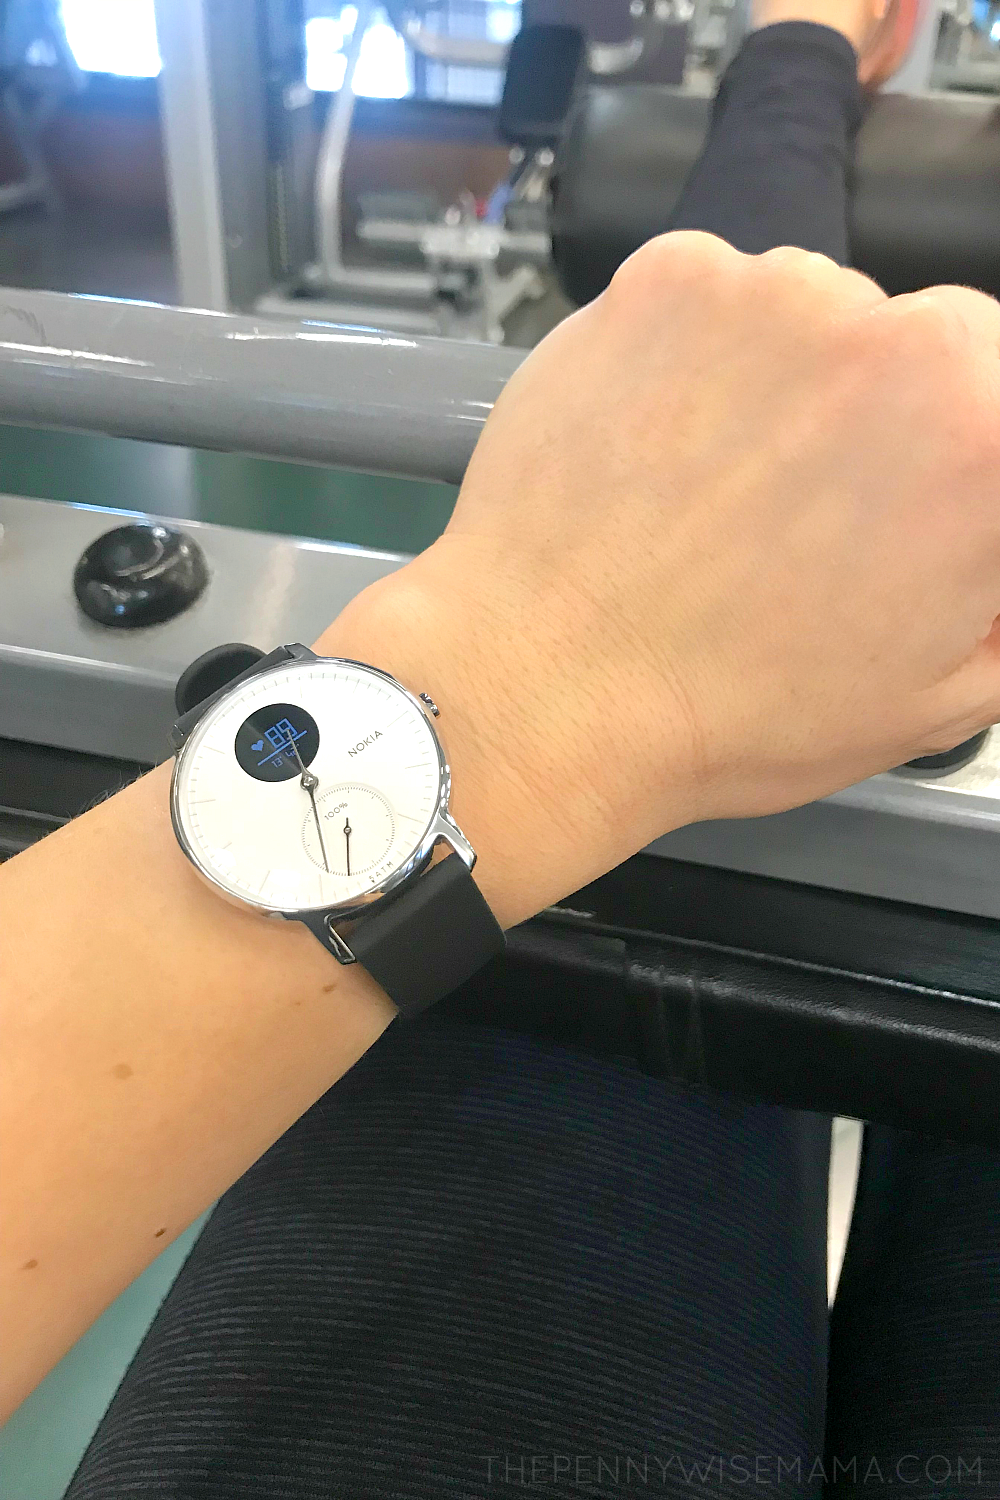 Meet Your Health Goals with the Nokia Steel HR